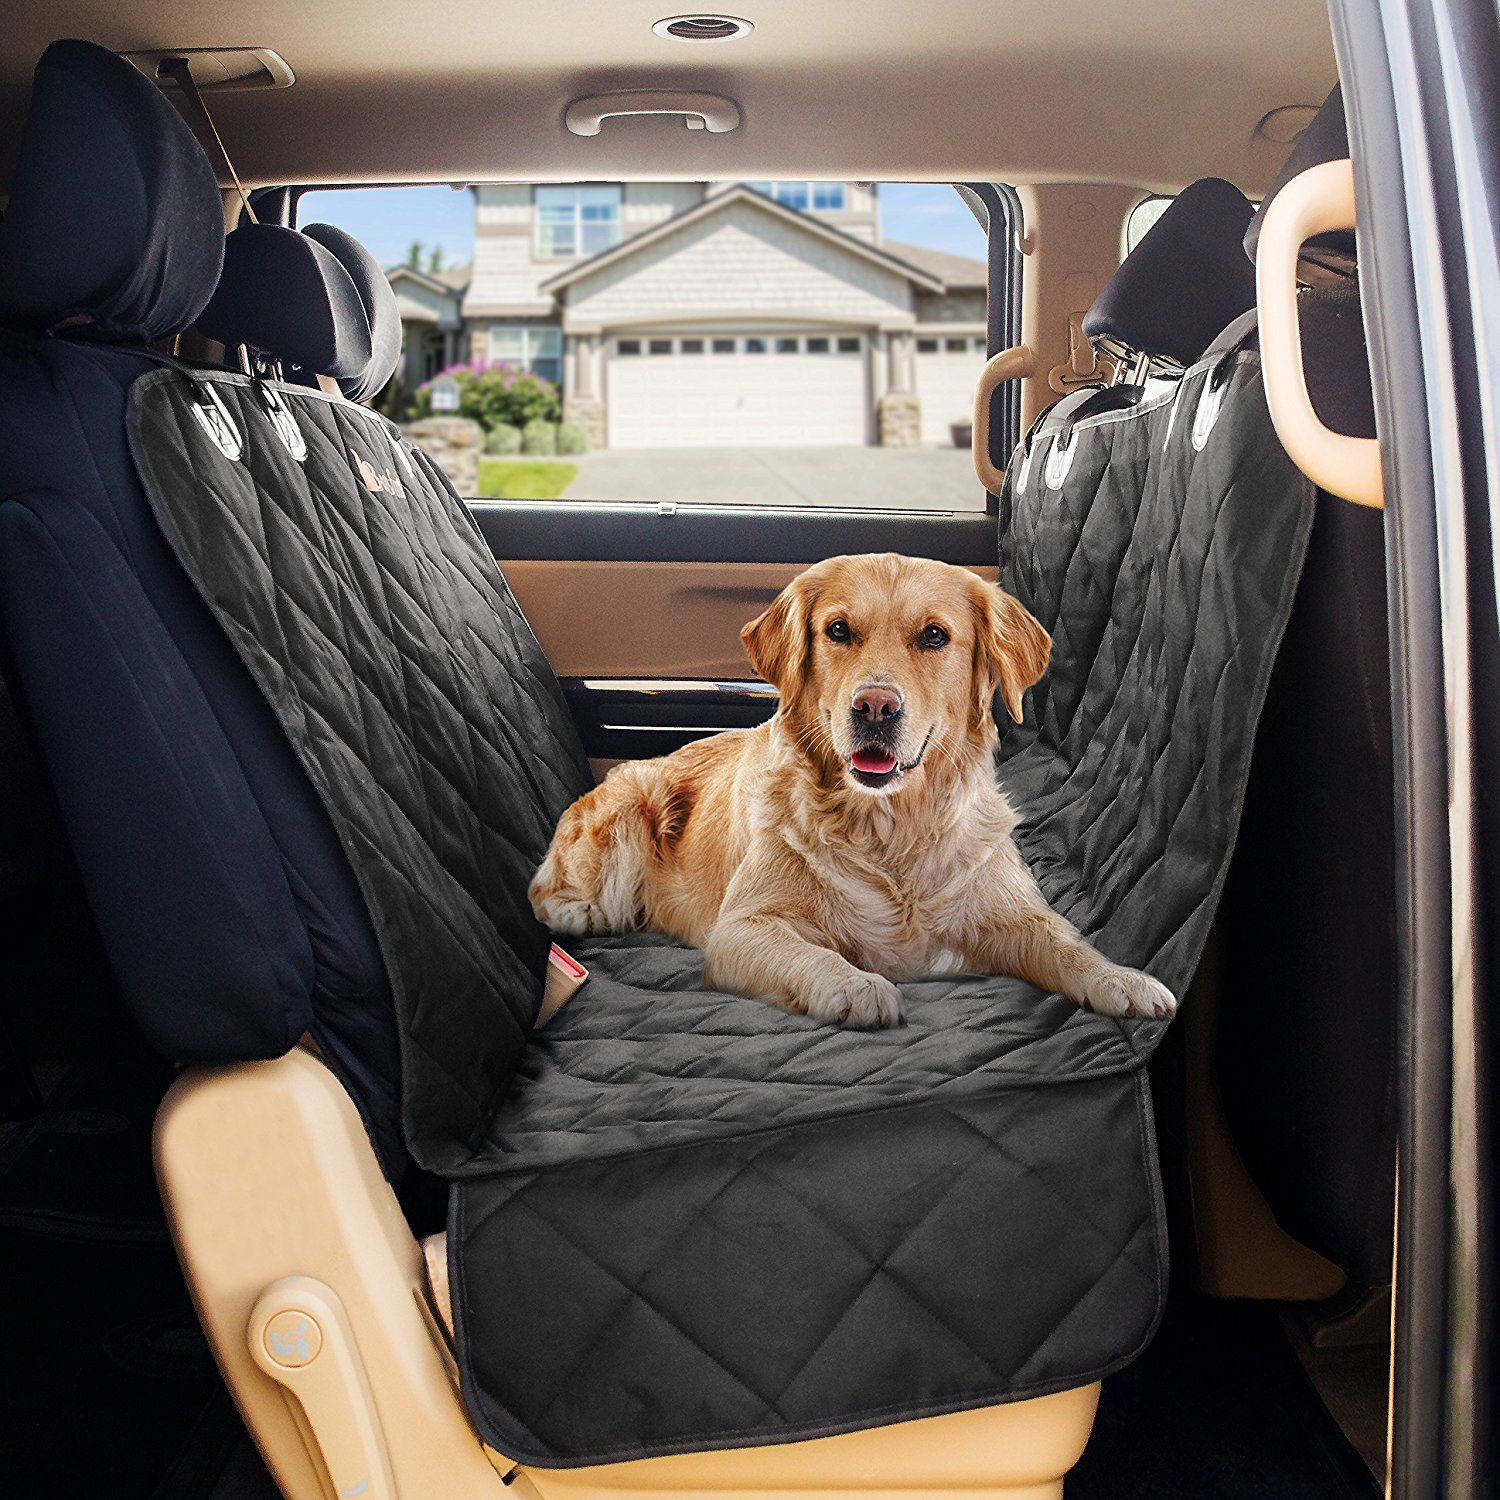 from product com dogs dog back maggiella belt cover dhgate rear accessories seat travel gift for car safety use hammock waterproof pet